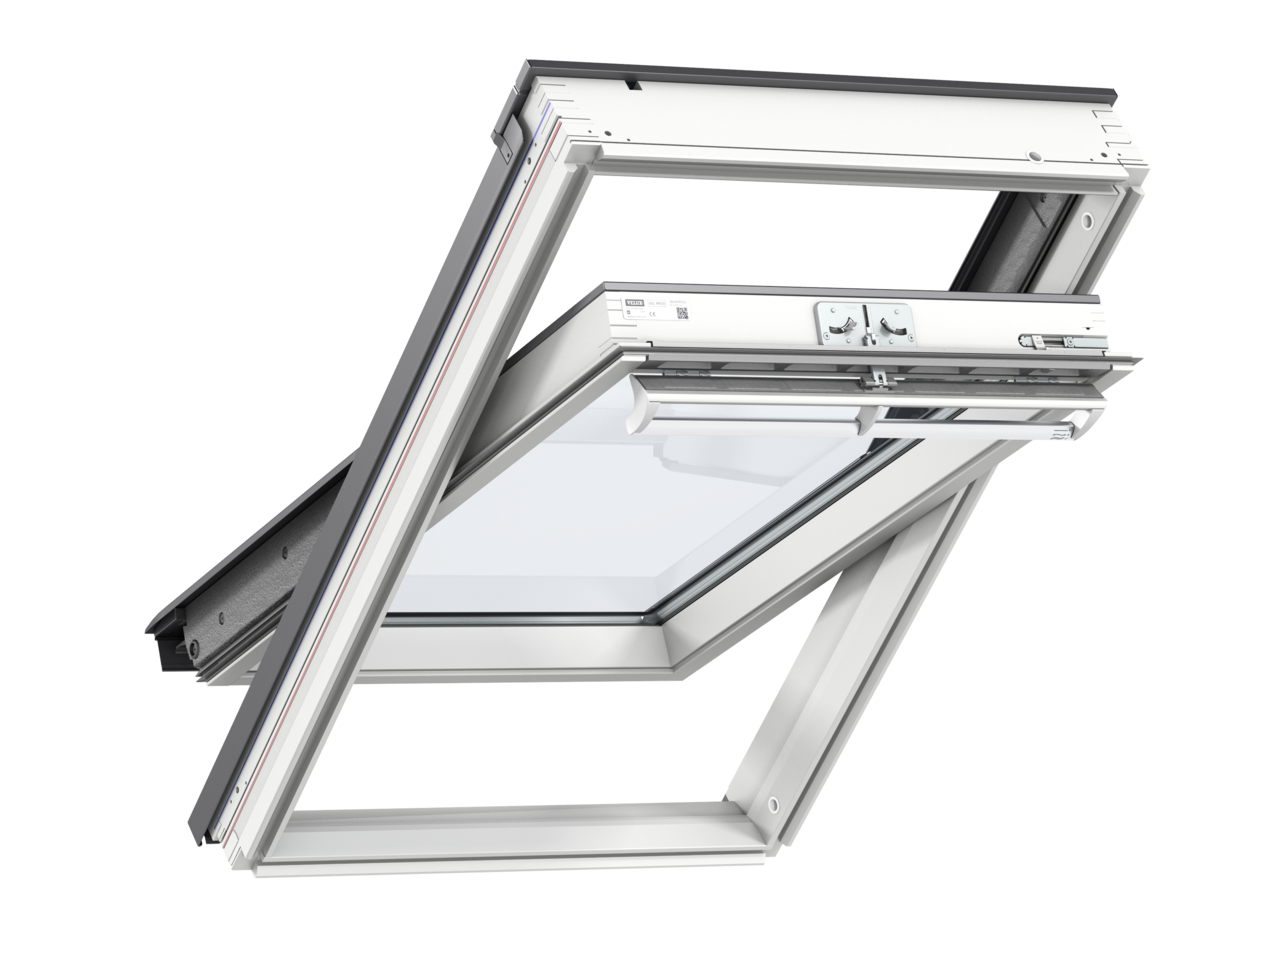 Velux GGL CK02 550 x 780mm Centre Pivot 62Pane Roof Window - White Painted